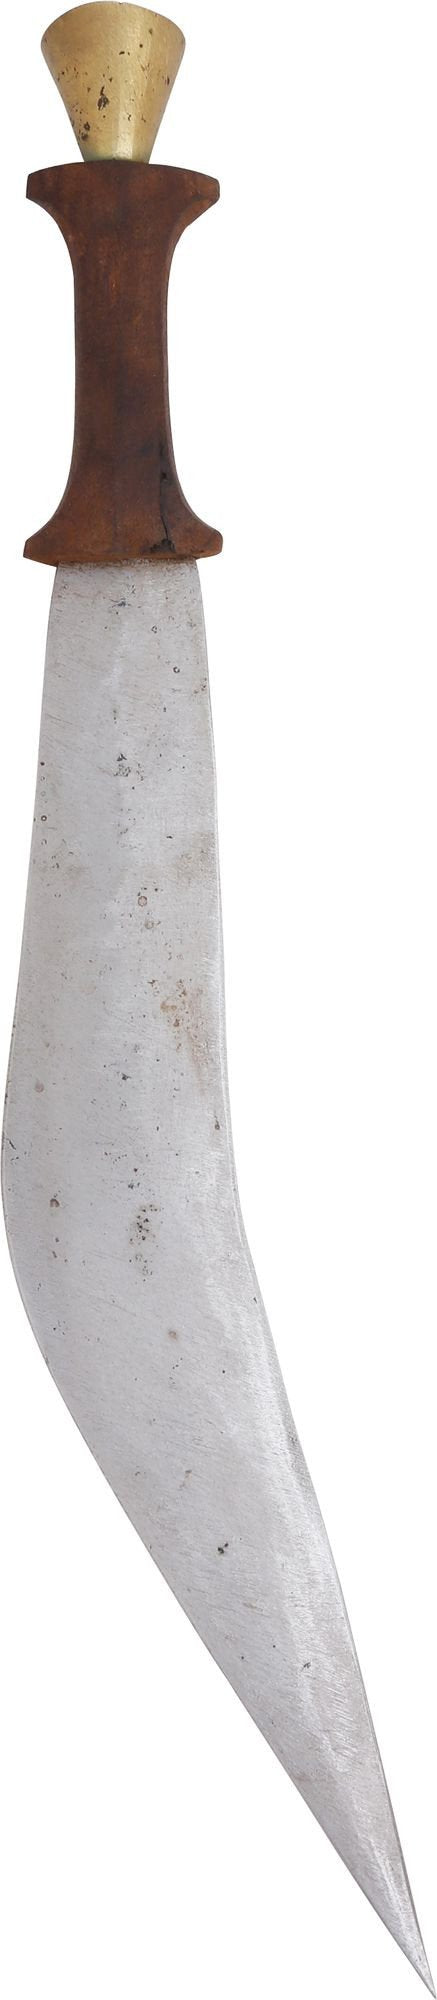 Dankil Sword From Djibouti - Product